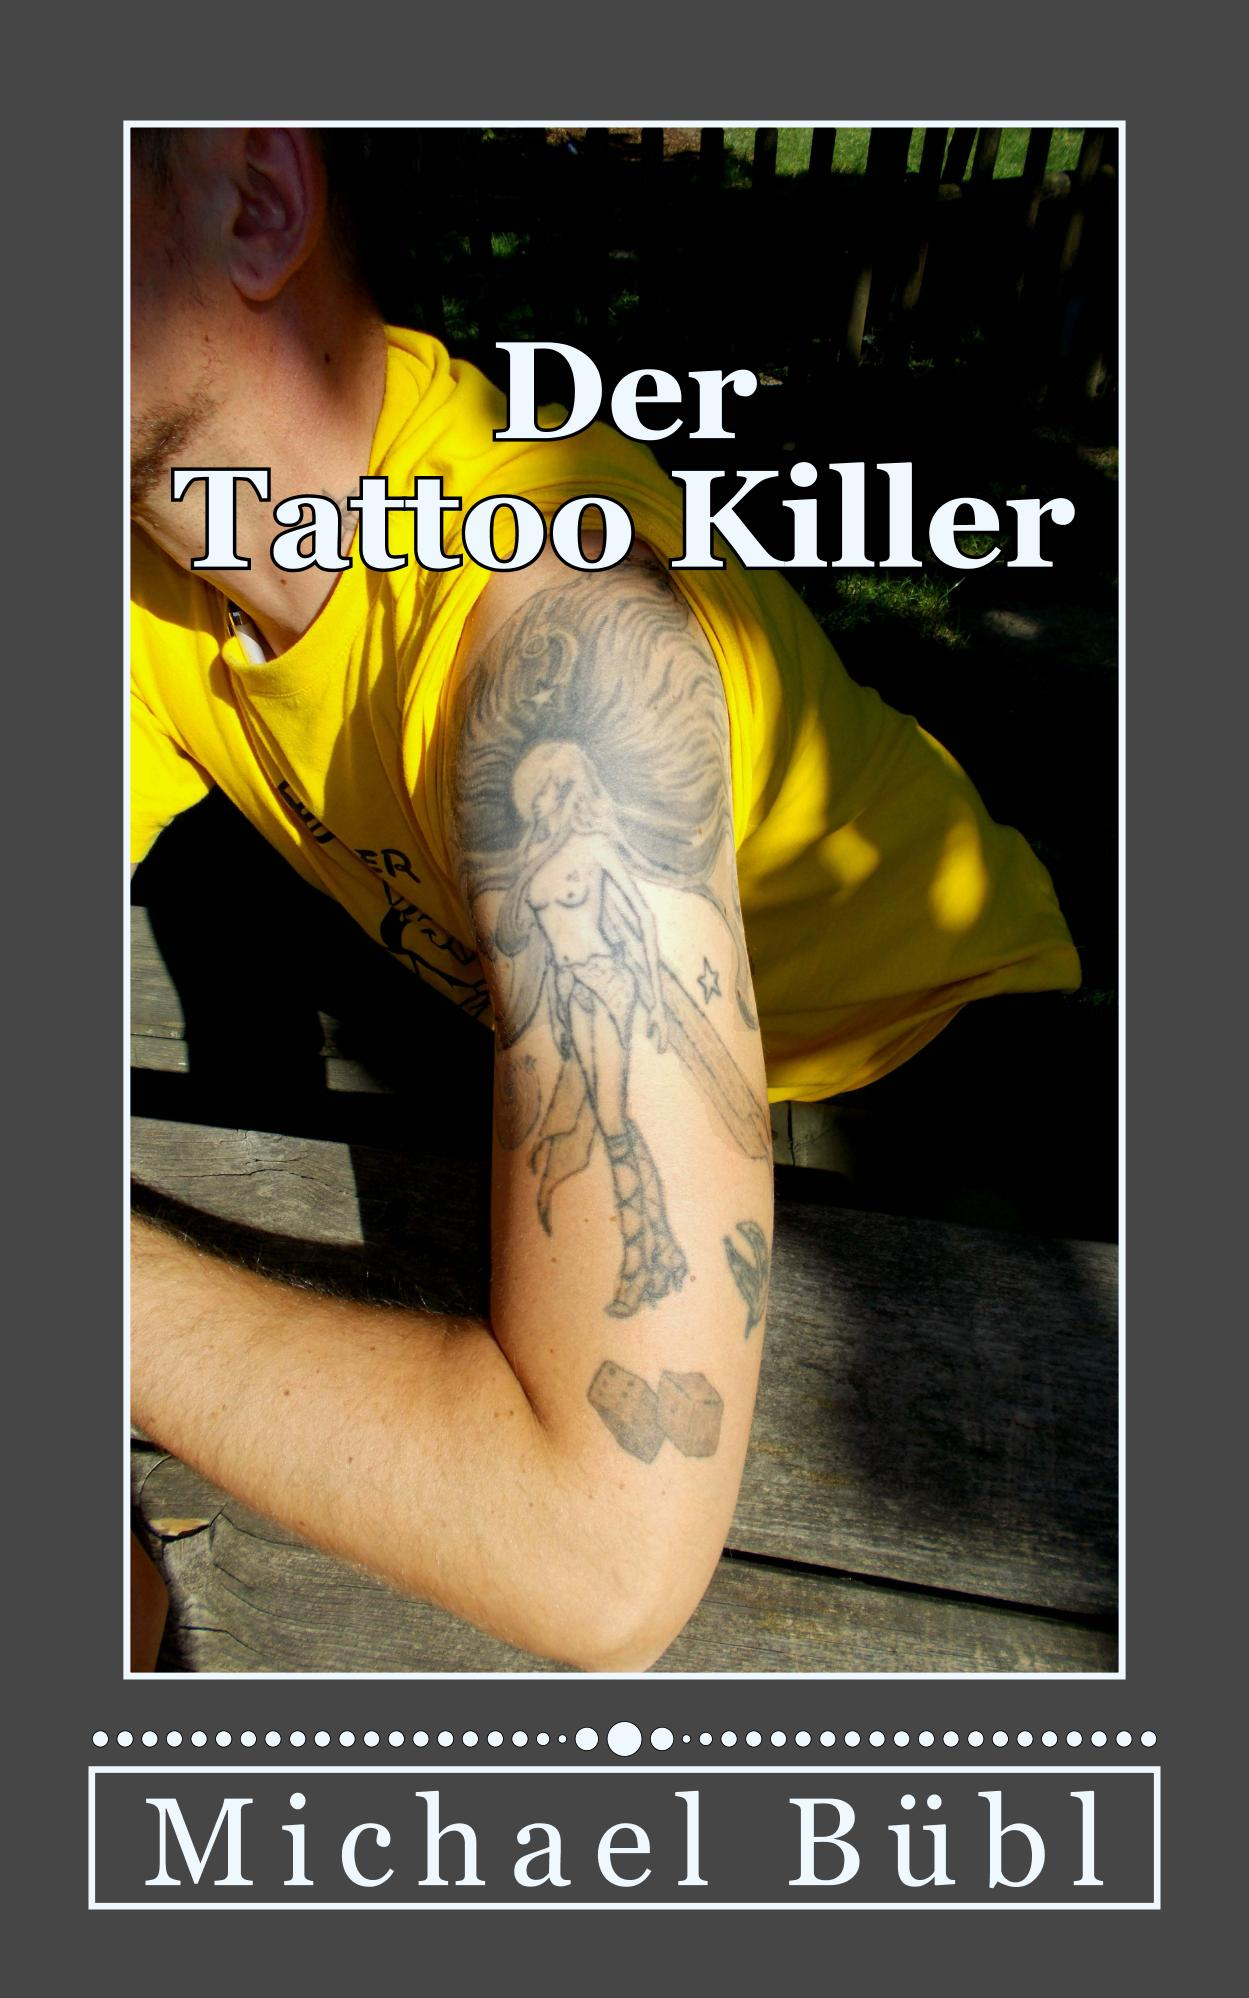 DerTattoo Killer Cover Amazon